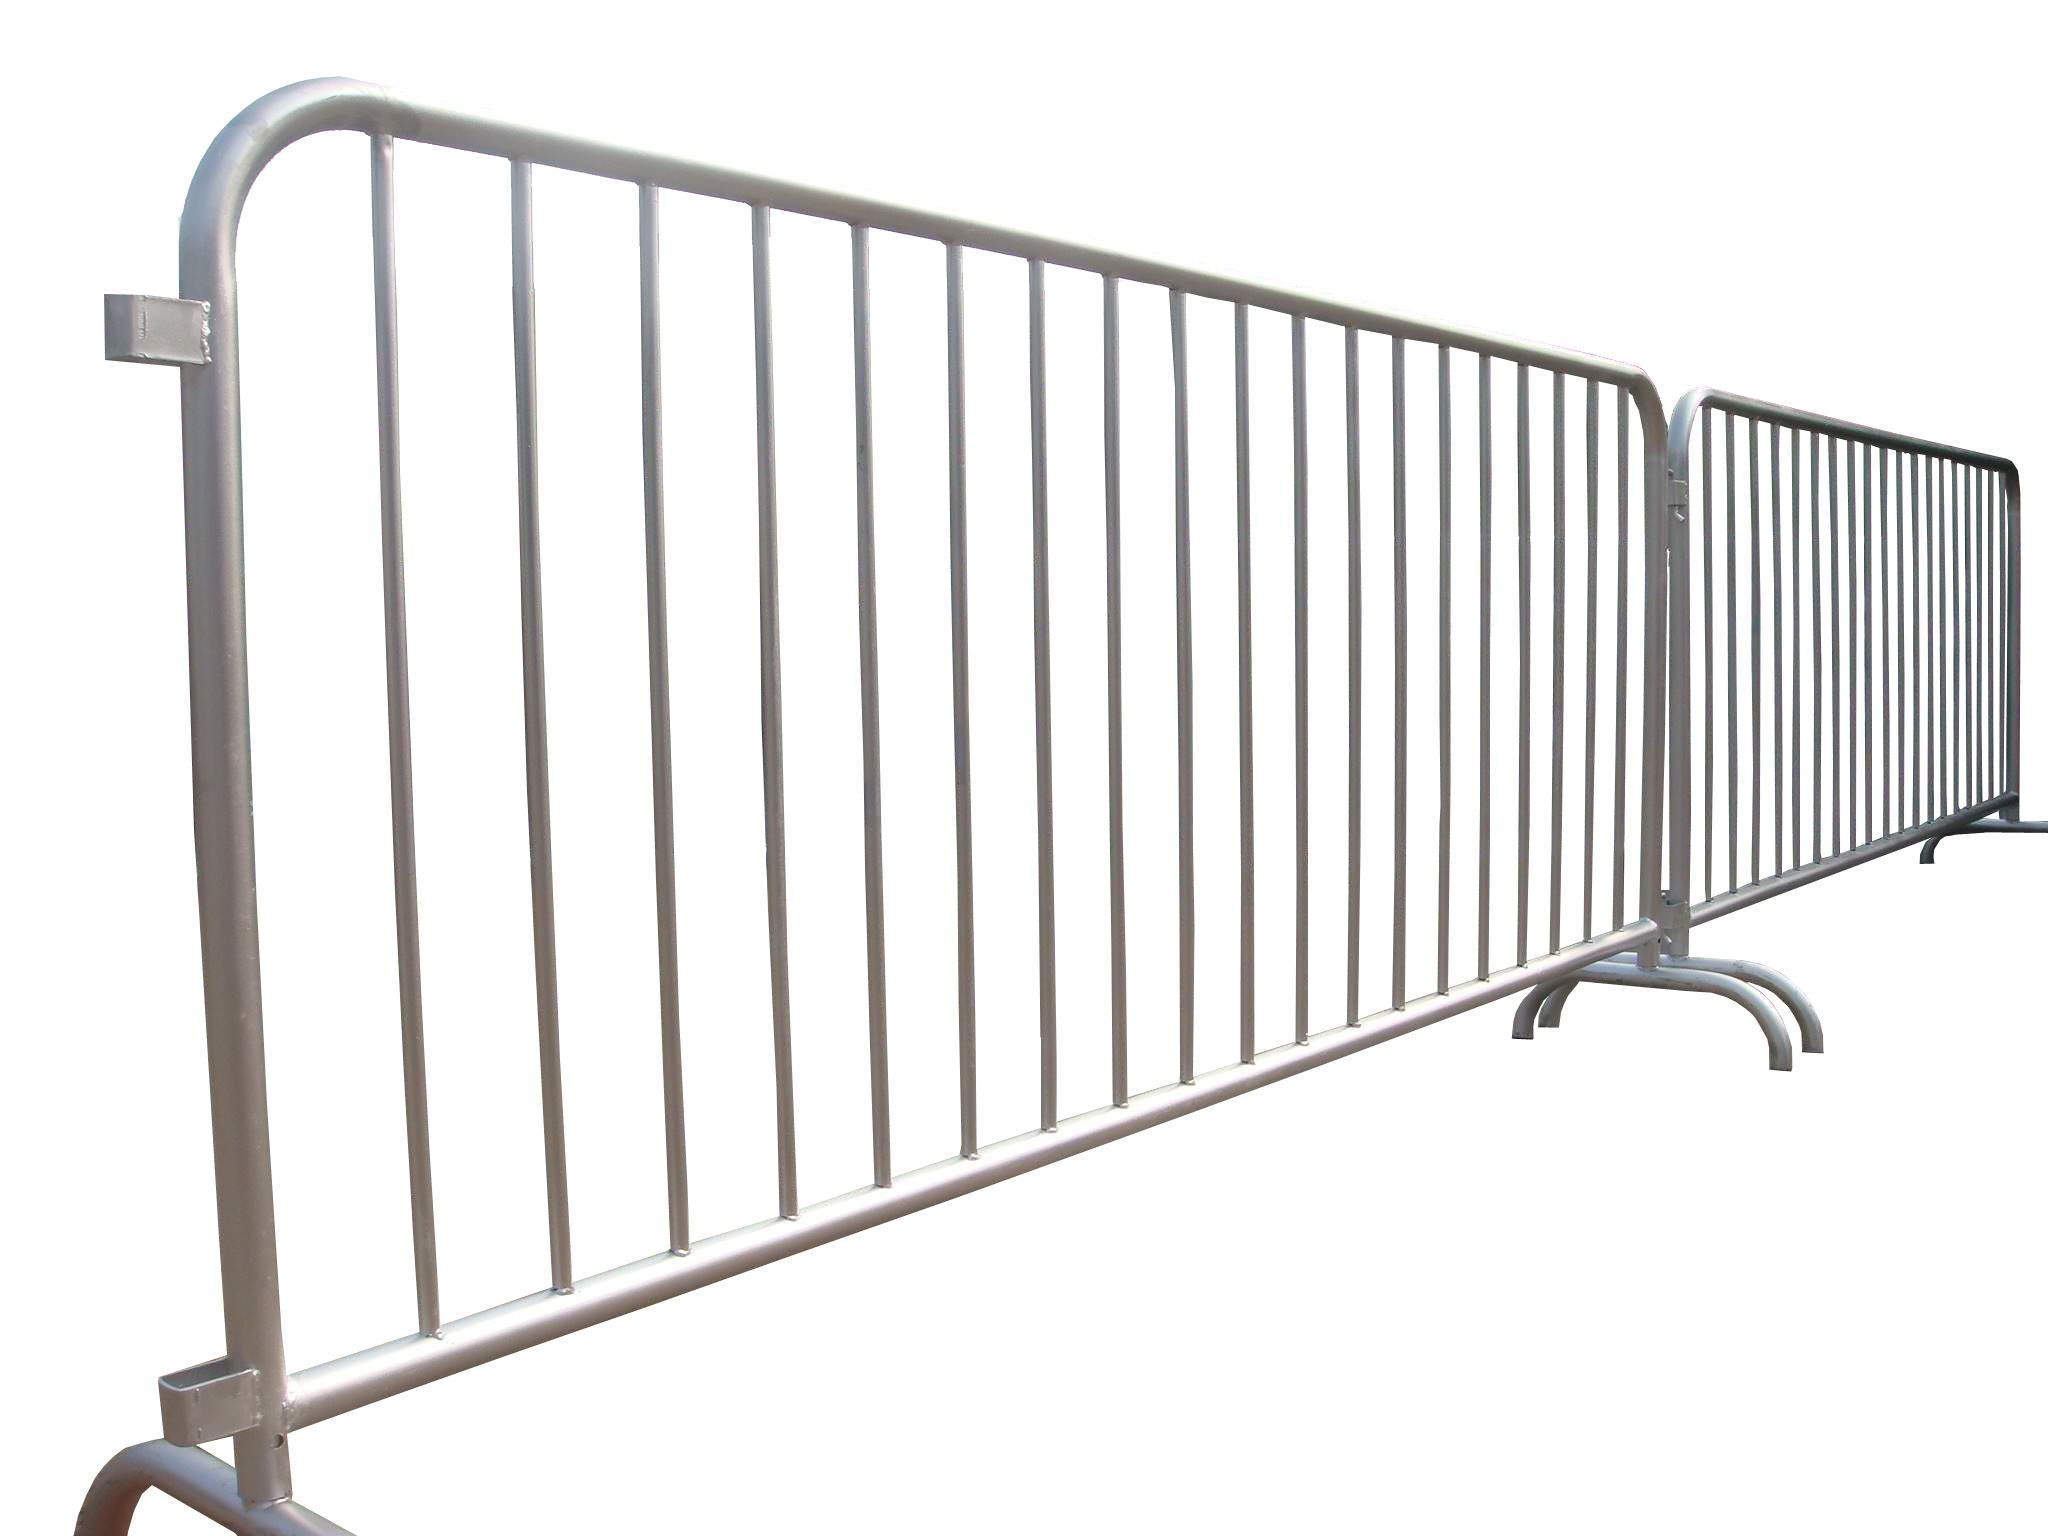 Hot Dipped Galvanized Crowd Control Barriers for event for